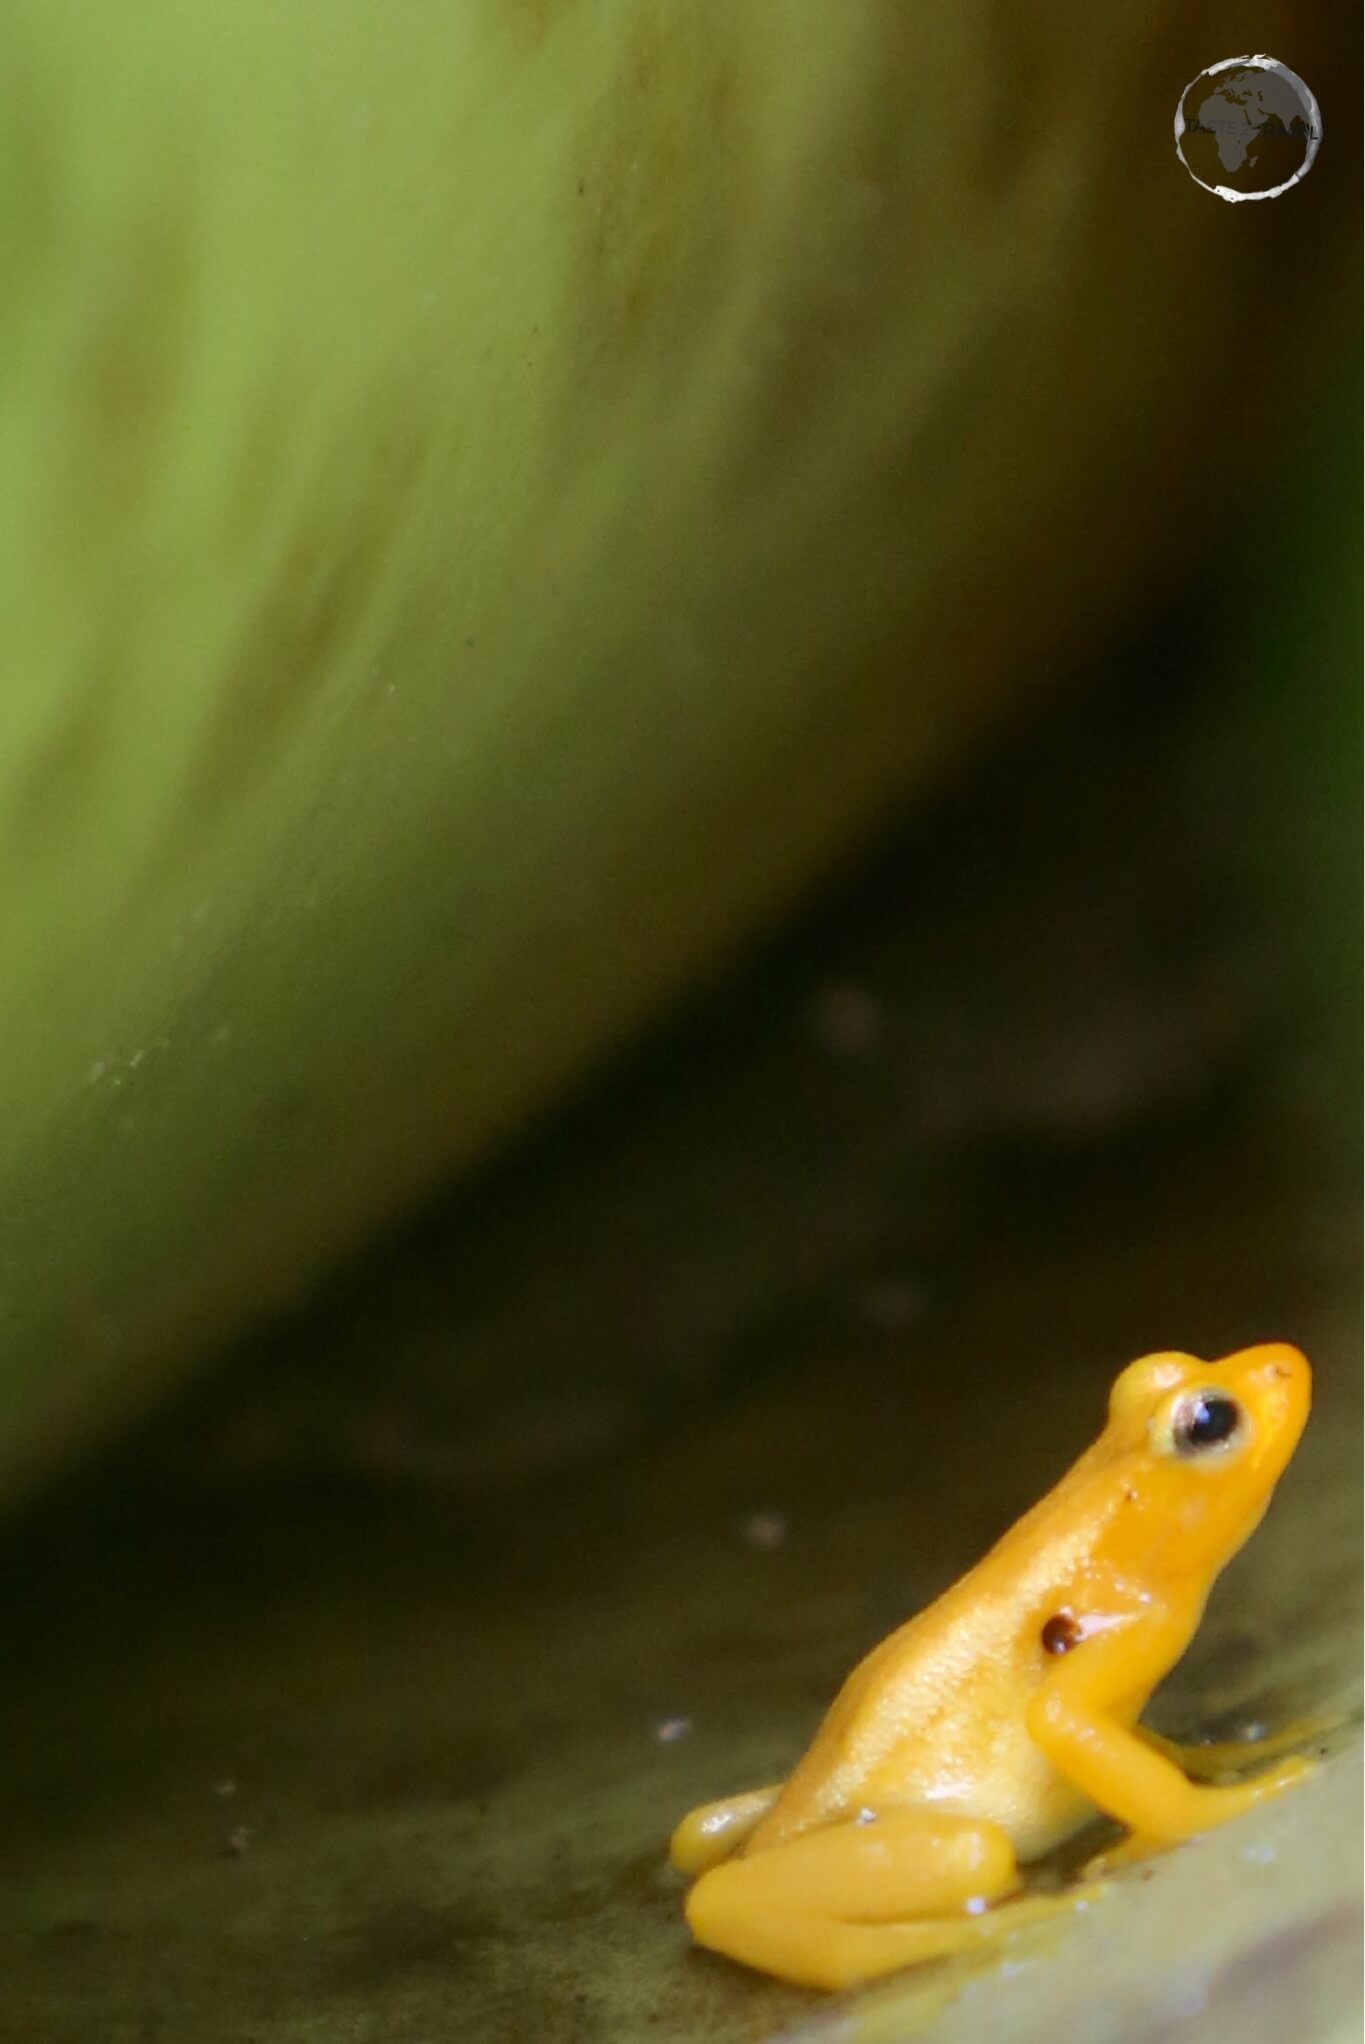 The golden poison dart frog is considered one of the most toxic animals on Earth. A single specimen measuring two inches (five centimetres) has enough venom to kill ten grown men. Guyana